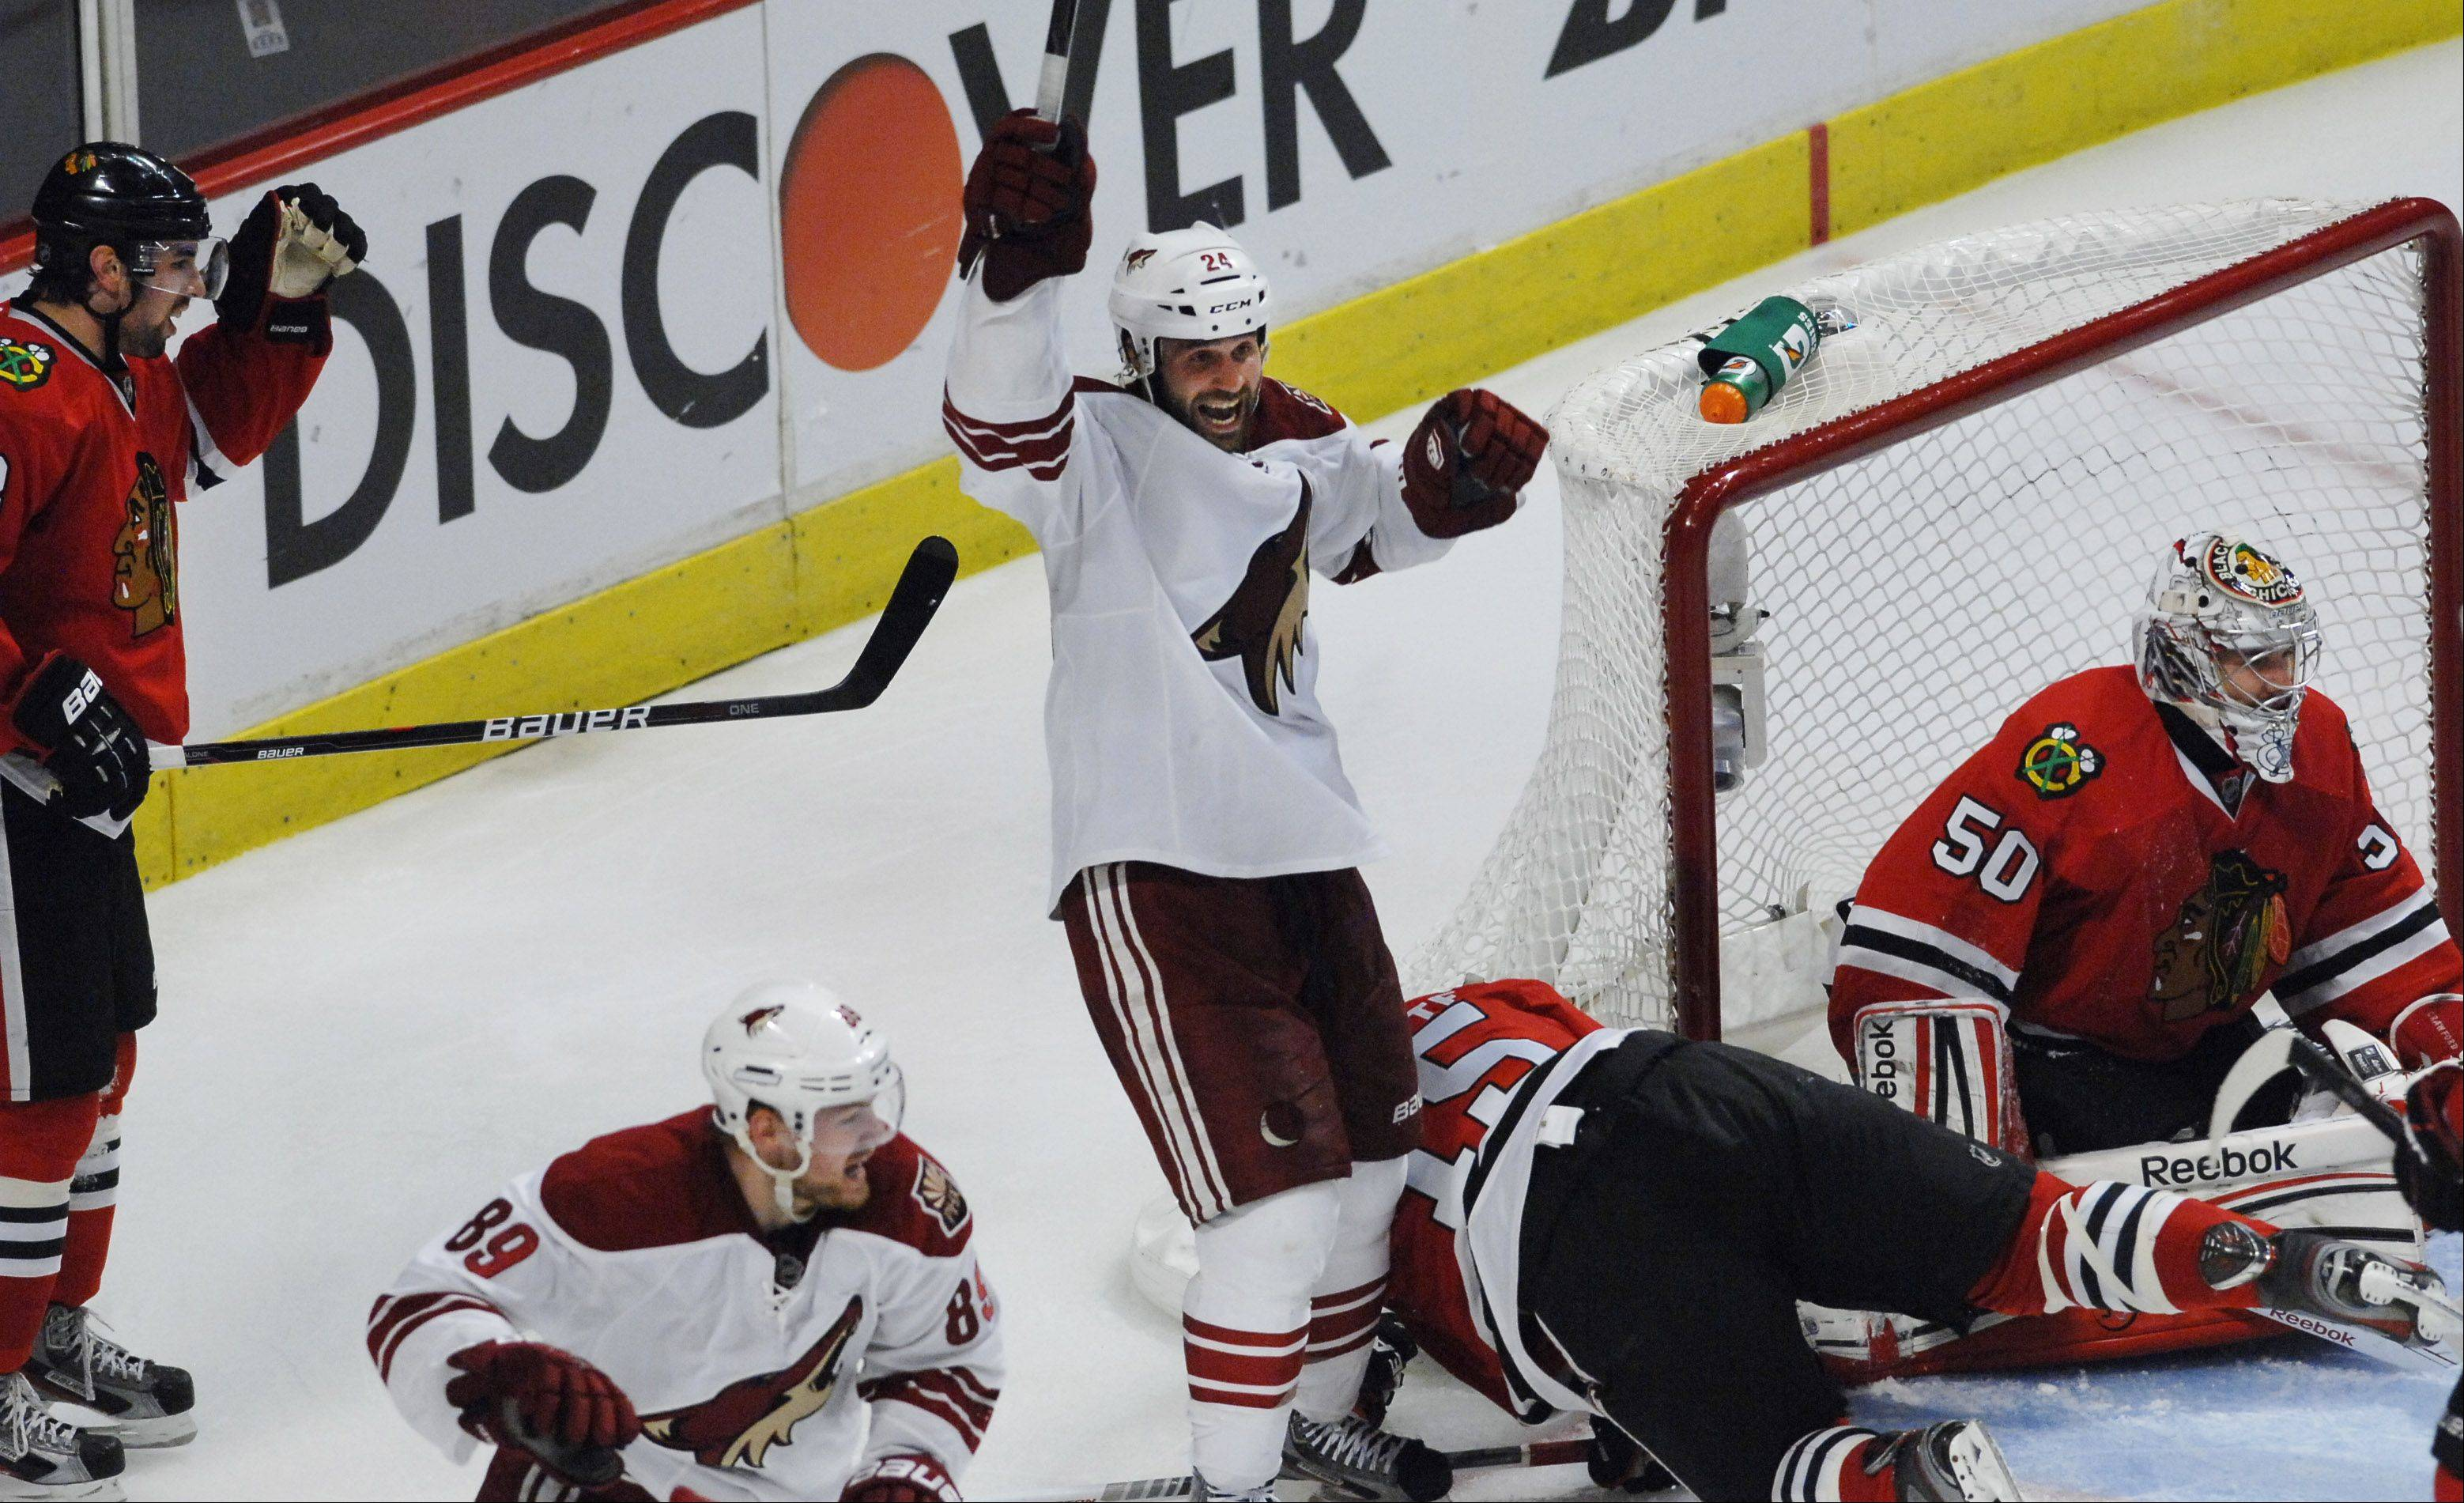 Phoenix Coyotes center Kyle Chipchura celebrates teammate Mikkel Boedker's goal in overtime as Chicago Blackhawks' Nick Leddy, Andrew Brunette, and goalie Corey Crawford react in overtime in the fourth game of the first round of the Stanley Cup Playoffs at the United Center Thursday in Chicago.